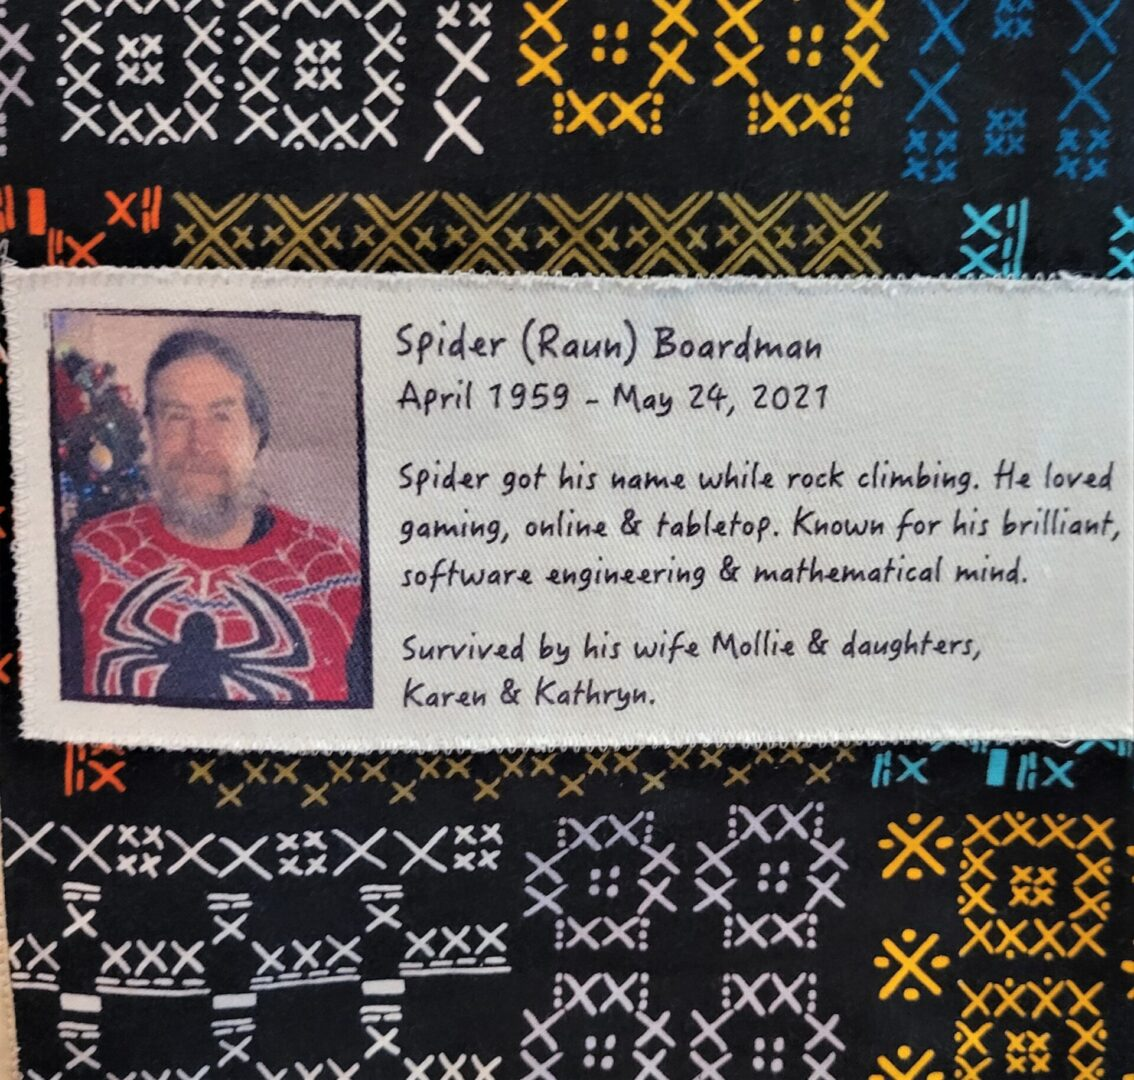 IN MEMORY OF SPIDER